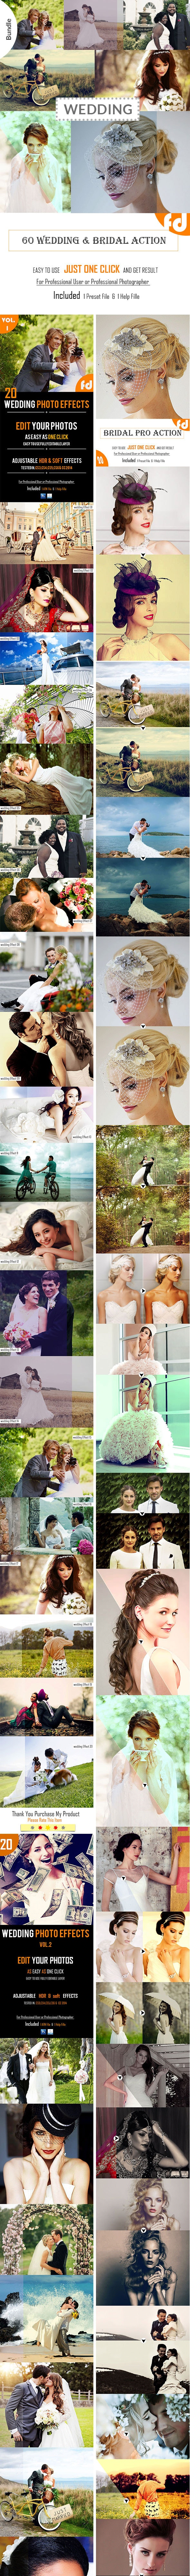 60 Wedding & Bridal Actions Bundle - Photo Effects Actions